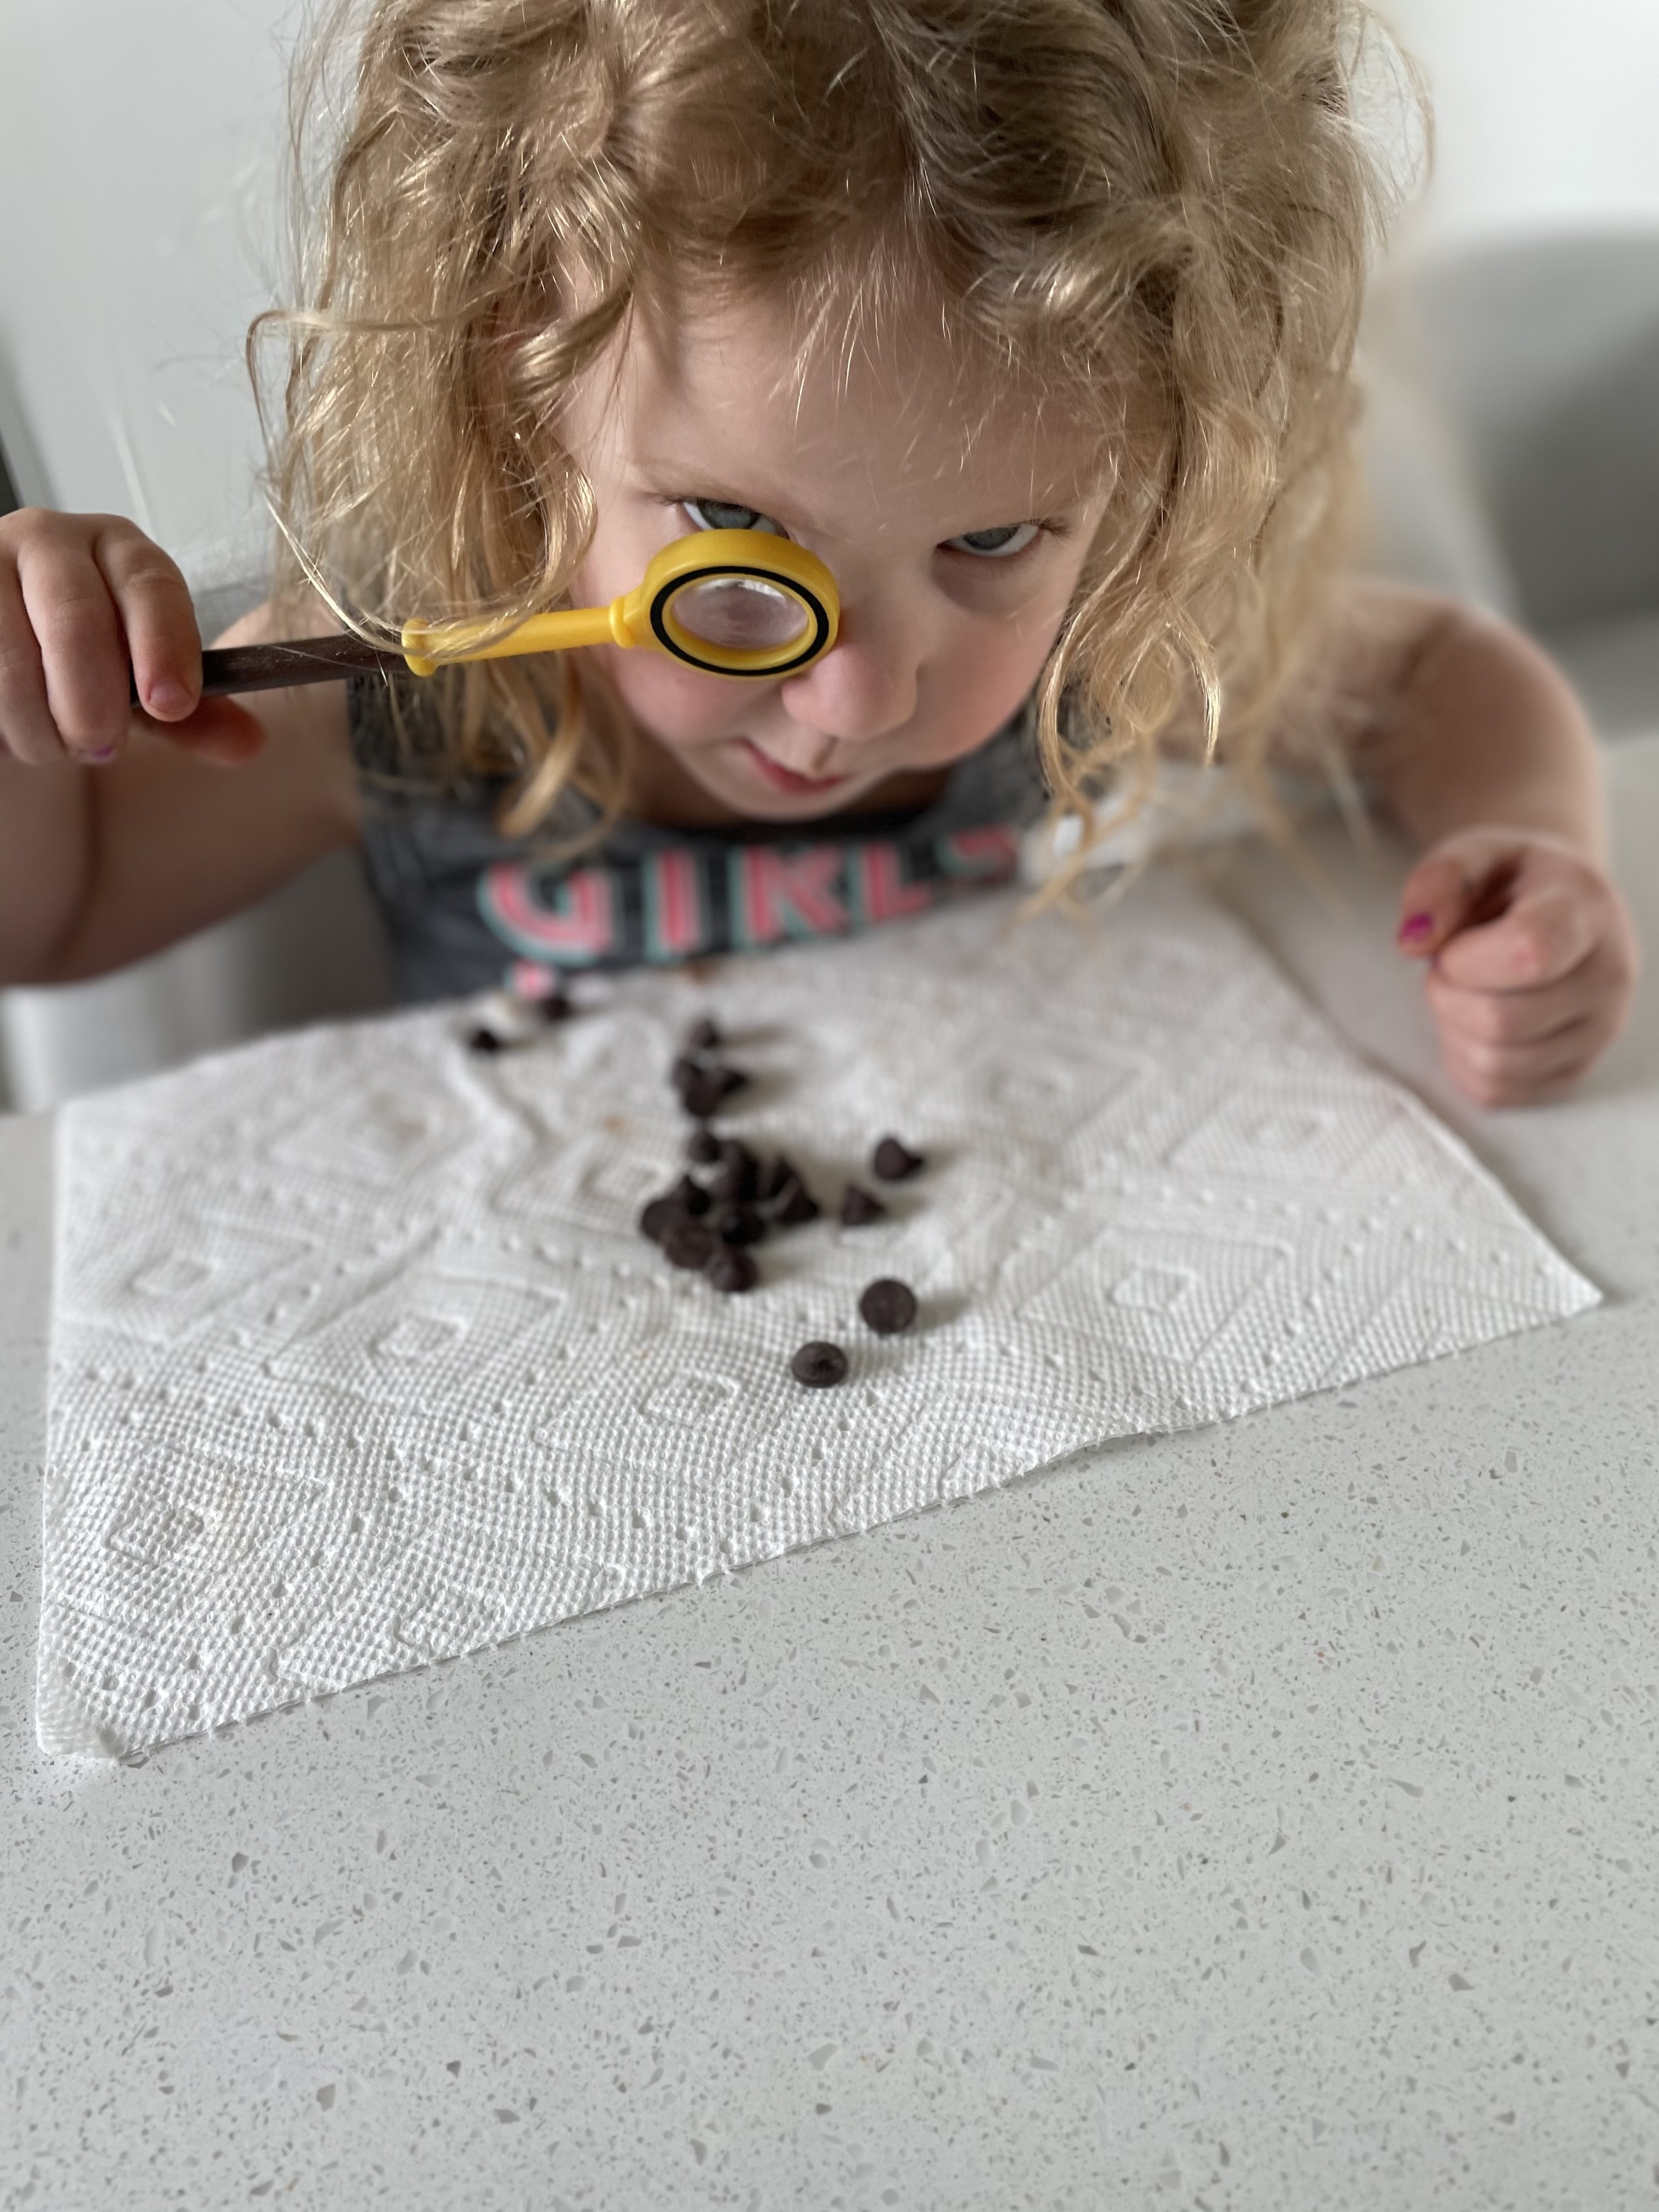 The author's daughter inspecting chocolate chips